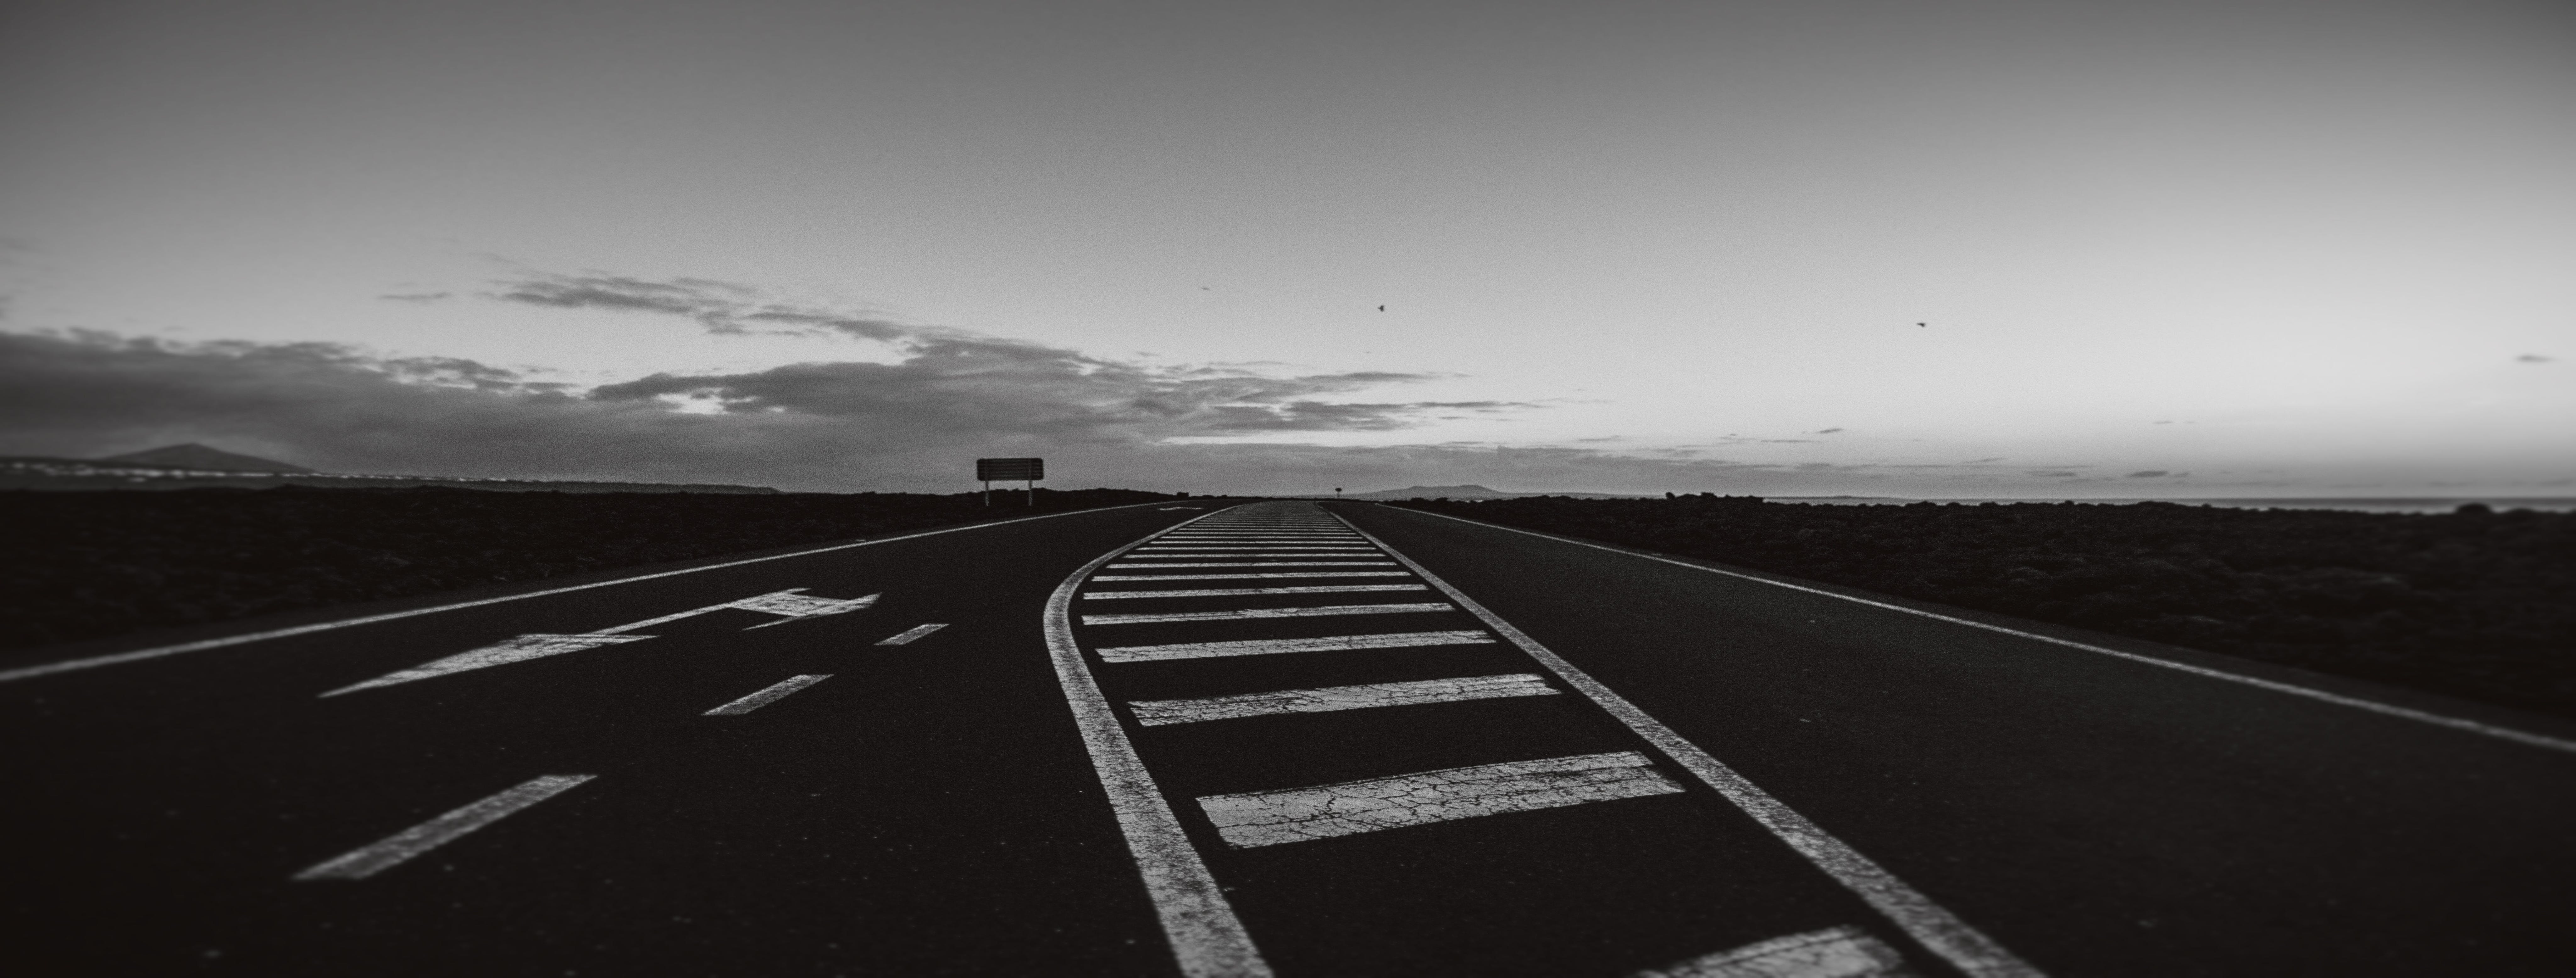 Free stock photo of background, black-and-white, road, road marking